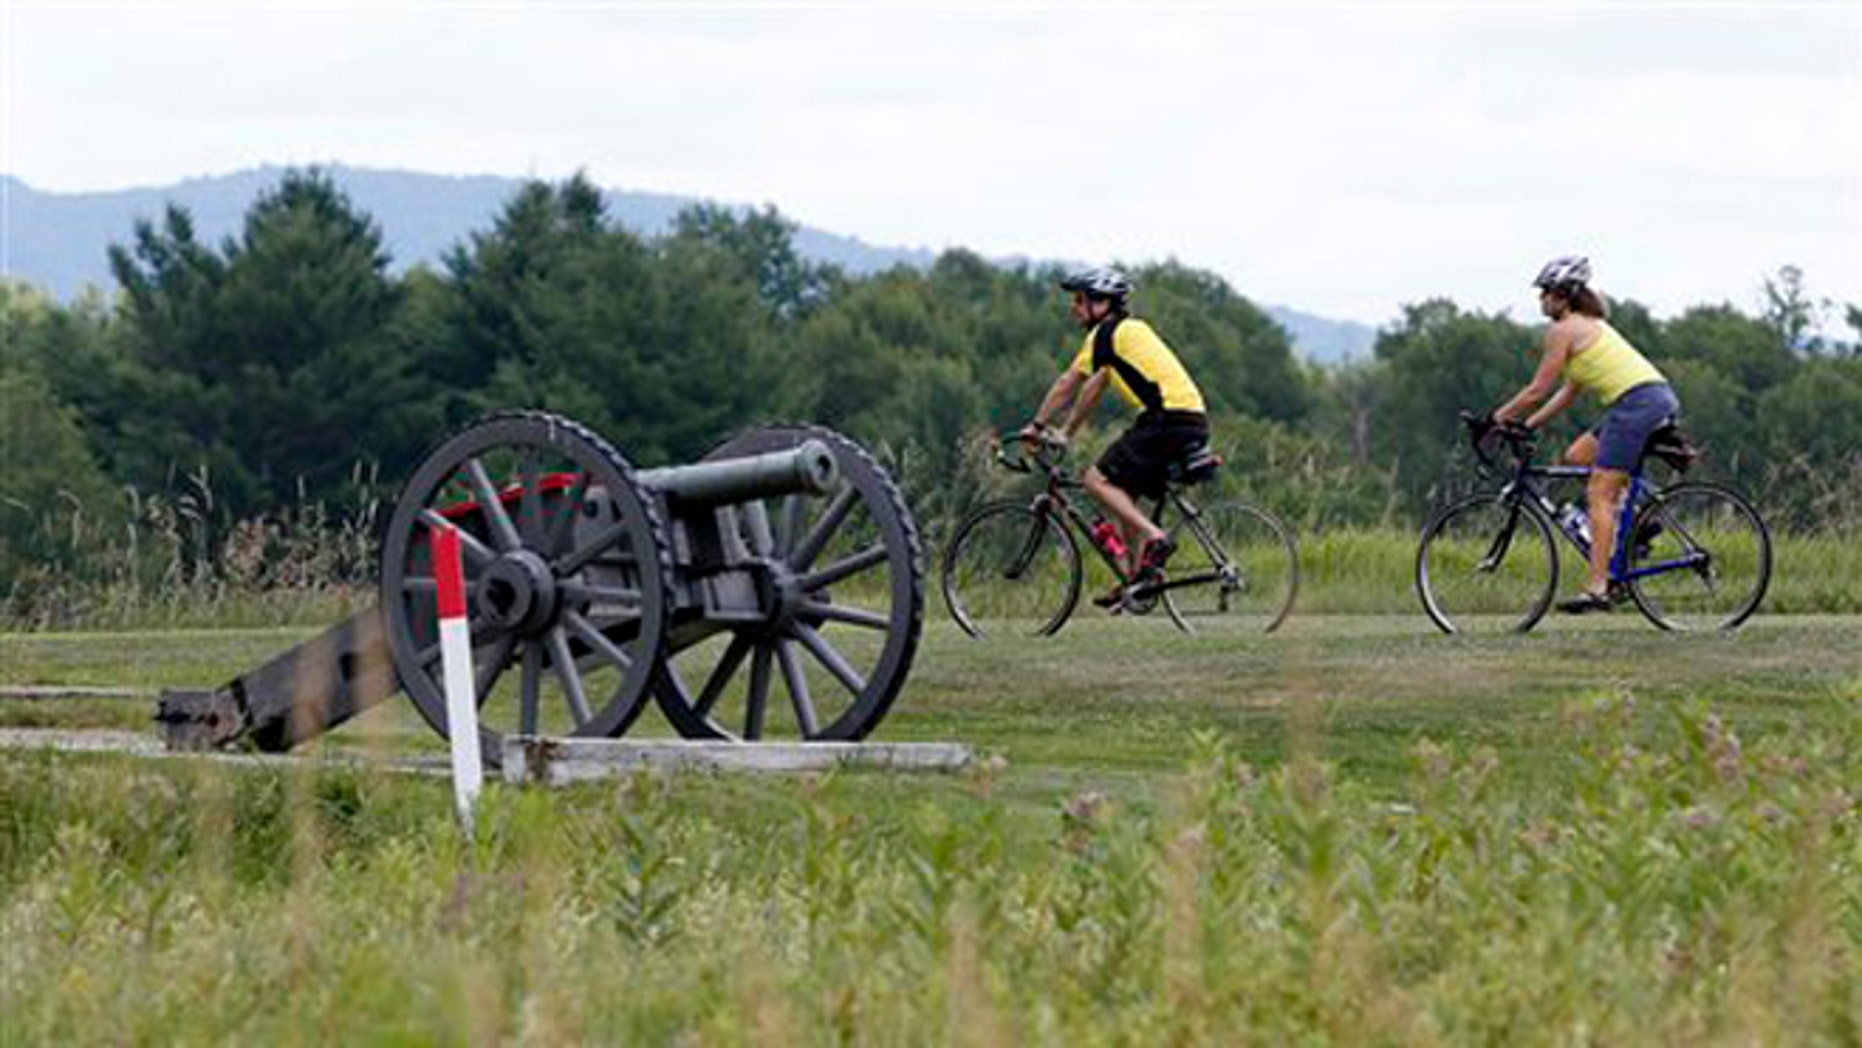 July 2, 2012: Eric Epstien, left, and Isabelle Davidowitz, of Braddock Heights, Md., ride past a cannon on a bike tour of Saratoga National Historical Park in Stillwater, N.Y.